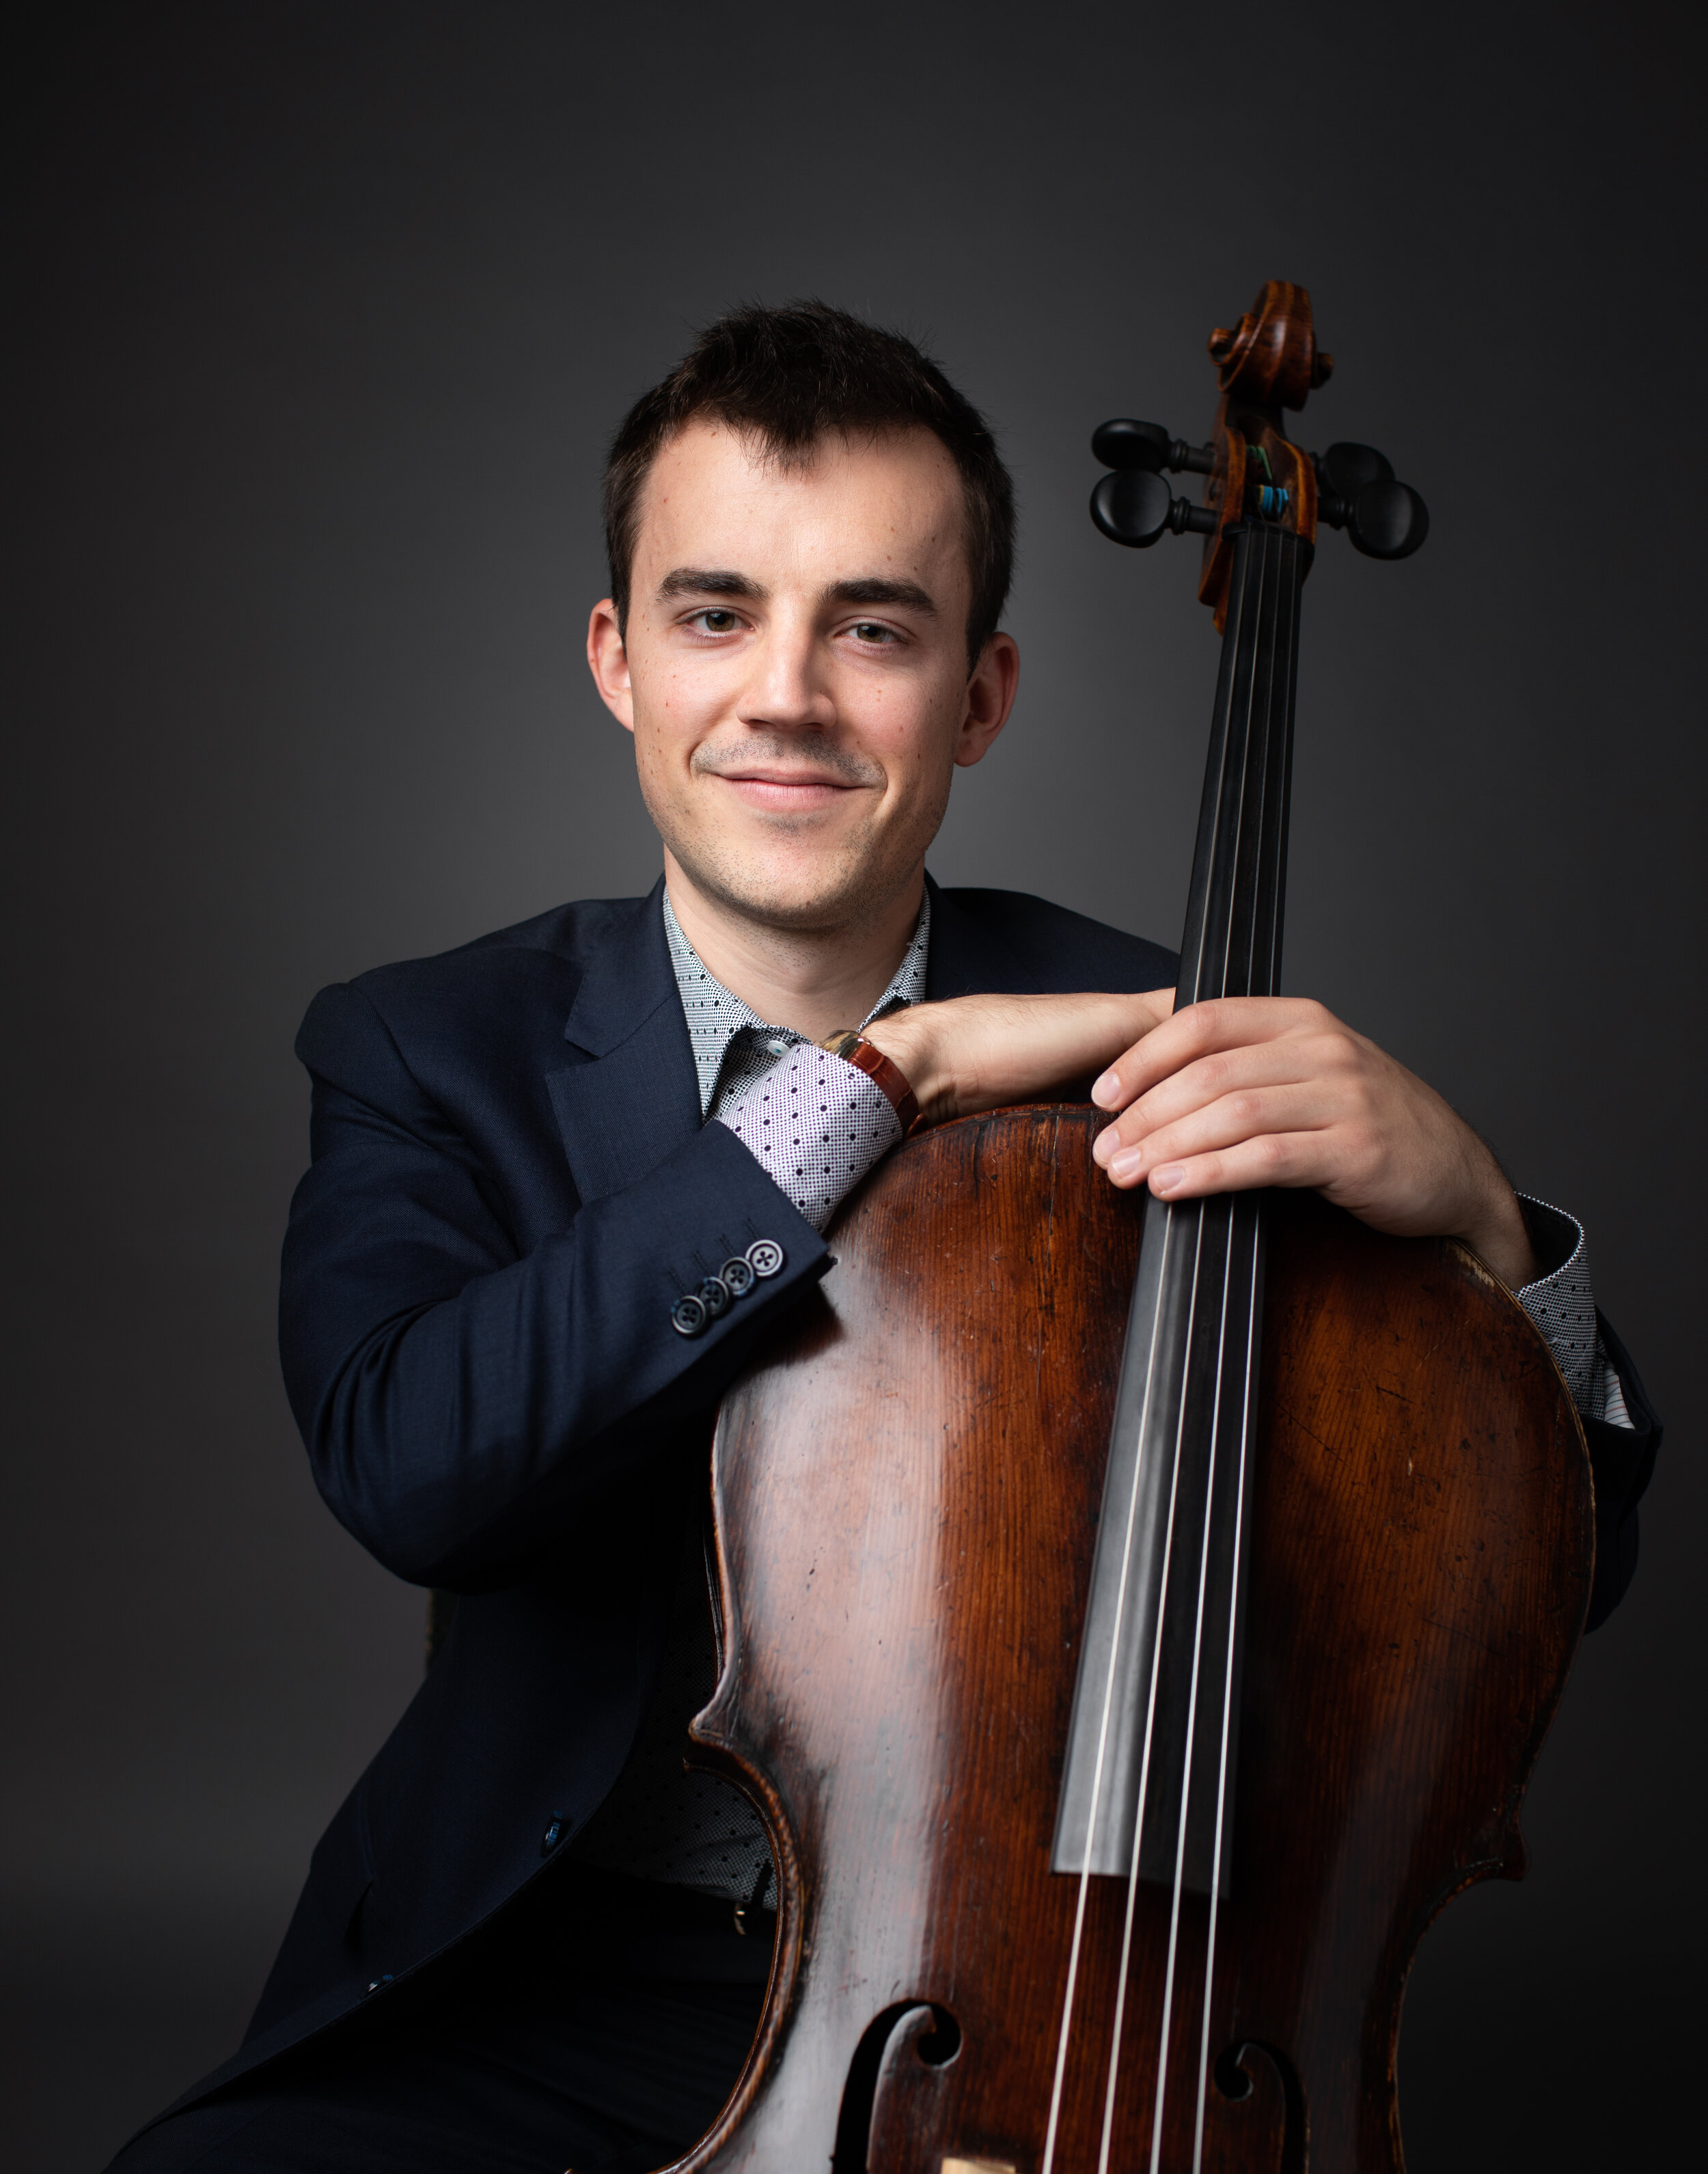 - Rainer Eudeikis was appointed Principal Cellist of the Atlanta Symphony Orchestra in 2019. He was previously the Principal Cellist of the Utah Symphony for five seasons, and has performed in the same role at the Mainly Mozart Festival, Cabrillo Festival of Contemporary Music, and the Central City Opera.Recent performance highlights include Schumann's Cello Concerto in A minor and Strauss' Don Quixote with the Utah Symphony, and C.P.E. Bach's Cello Concerto in A Major for NOVA in Salt Lake City. He has participated in numerous international festivals, including the Schleswig-Holstein Musik Festival (Germany), Britten-Pears Programme at Aldeburgh (UK), and the Académie Musicale Internationale de Vaison-la-Romaine (France). Rainer was a two-year fellowship recipient at the Aspen Music Festival, and was a member of the New York String Orchestra at Carnegie Hall, where he was Principal Cellist in 2011.Born in Texas, Rainer began cello studies at the age of six. Following studies in Colorado with Jurgen de Lemos, he attended the University of Michigan as a student of Richard Aaron, completing his B.M. in 3 years with highest honors. He received his M.M. from Indiana University, where he studied with Eric Kim. In 2014, Rainer completed his Artist Diploma at the Curtis Institute of Music, studying with Carter Brey and Peter Wiley.